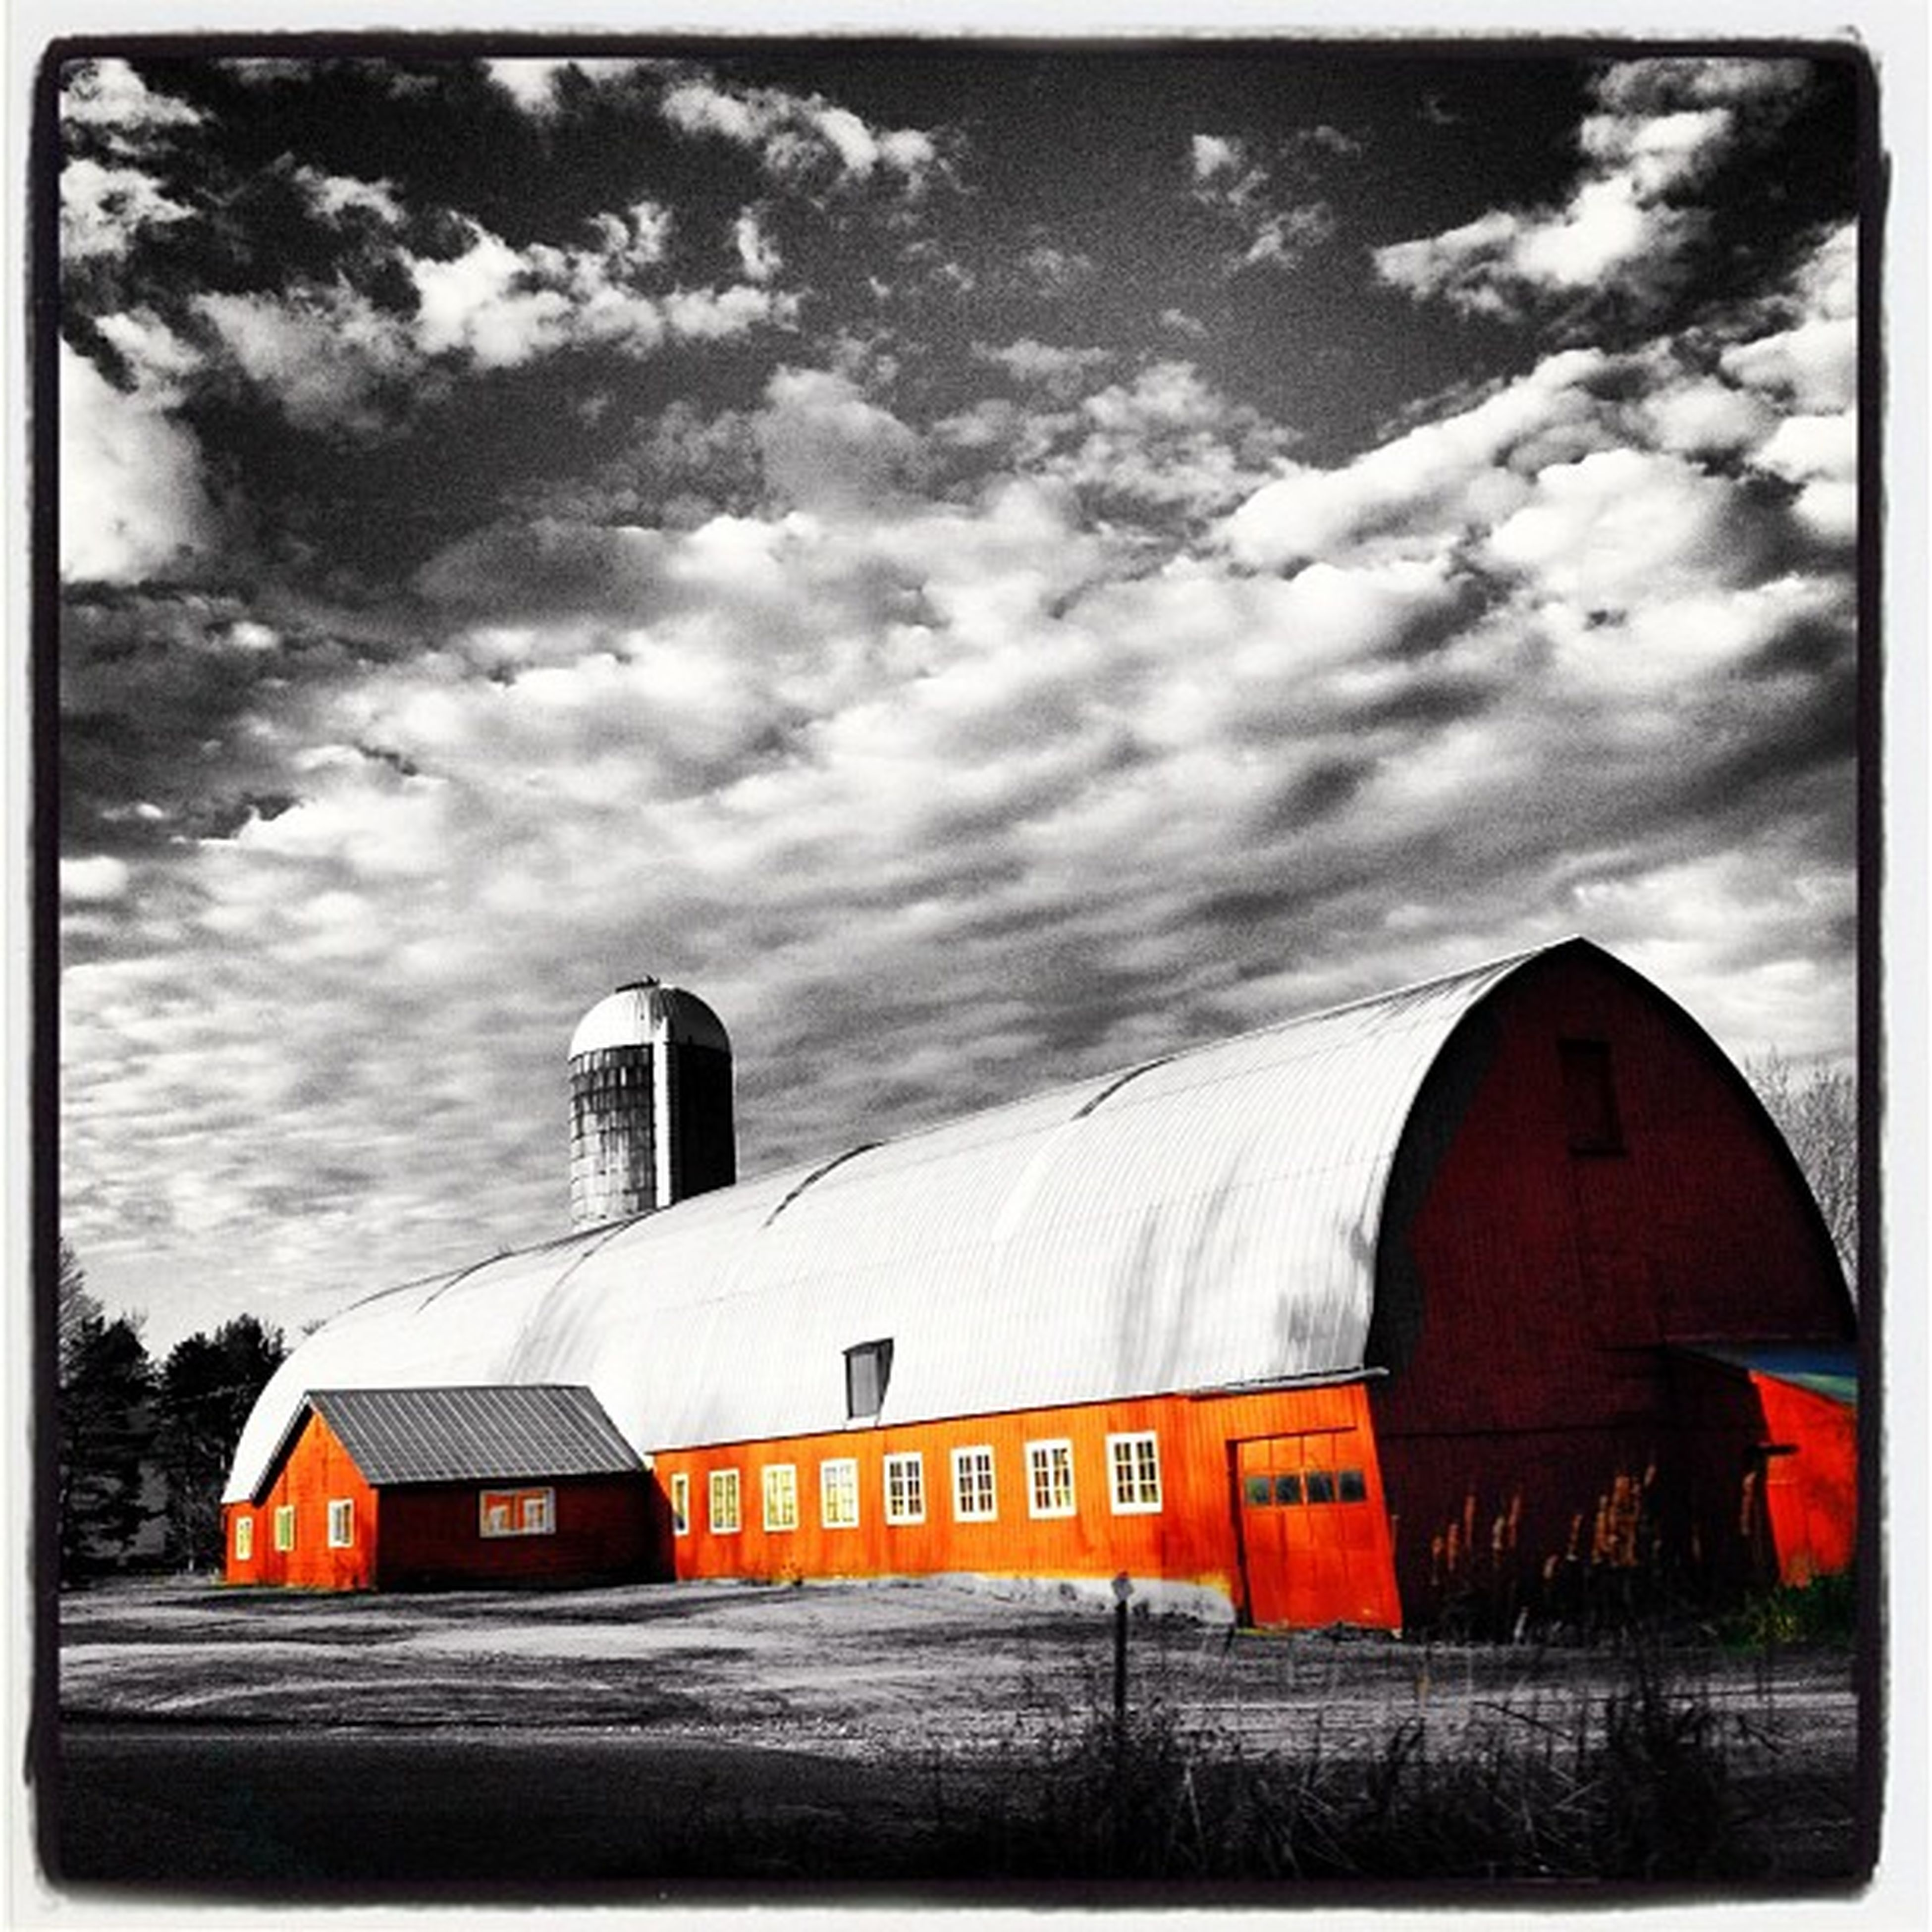 Red Barn of Elm Hill Farm. #vt Silo Vermont_scenery Farm Insta_america Blackwhite 802 Bw Igharjit Iphoneonly Vermontbyvermonters Photooftheday Vermont_scene Picoftheday Igvermont Artistic Igvt Vermont Vt_landscape Selective_coloring All_shots Redbarn Instamood Bestoftheday Instagood Webstagram Blackandwhite Vt